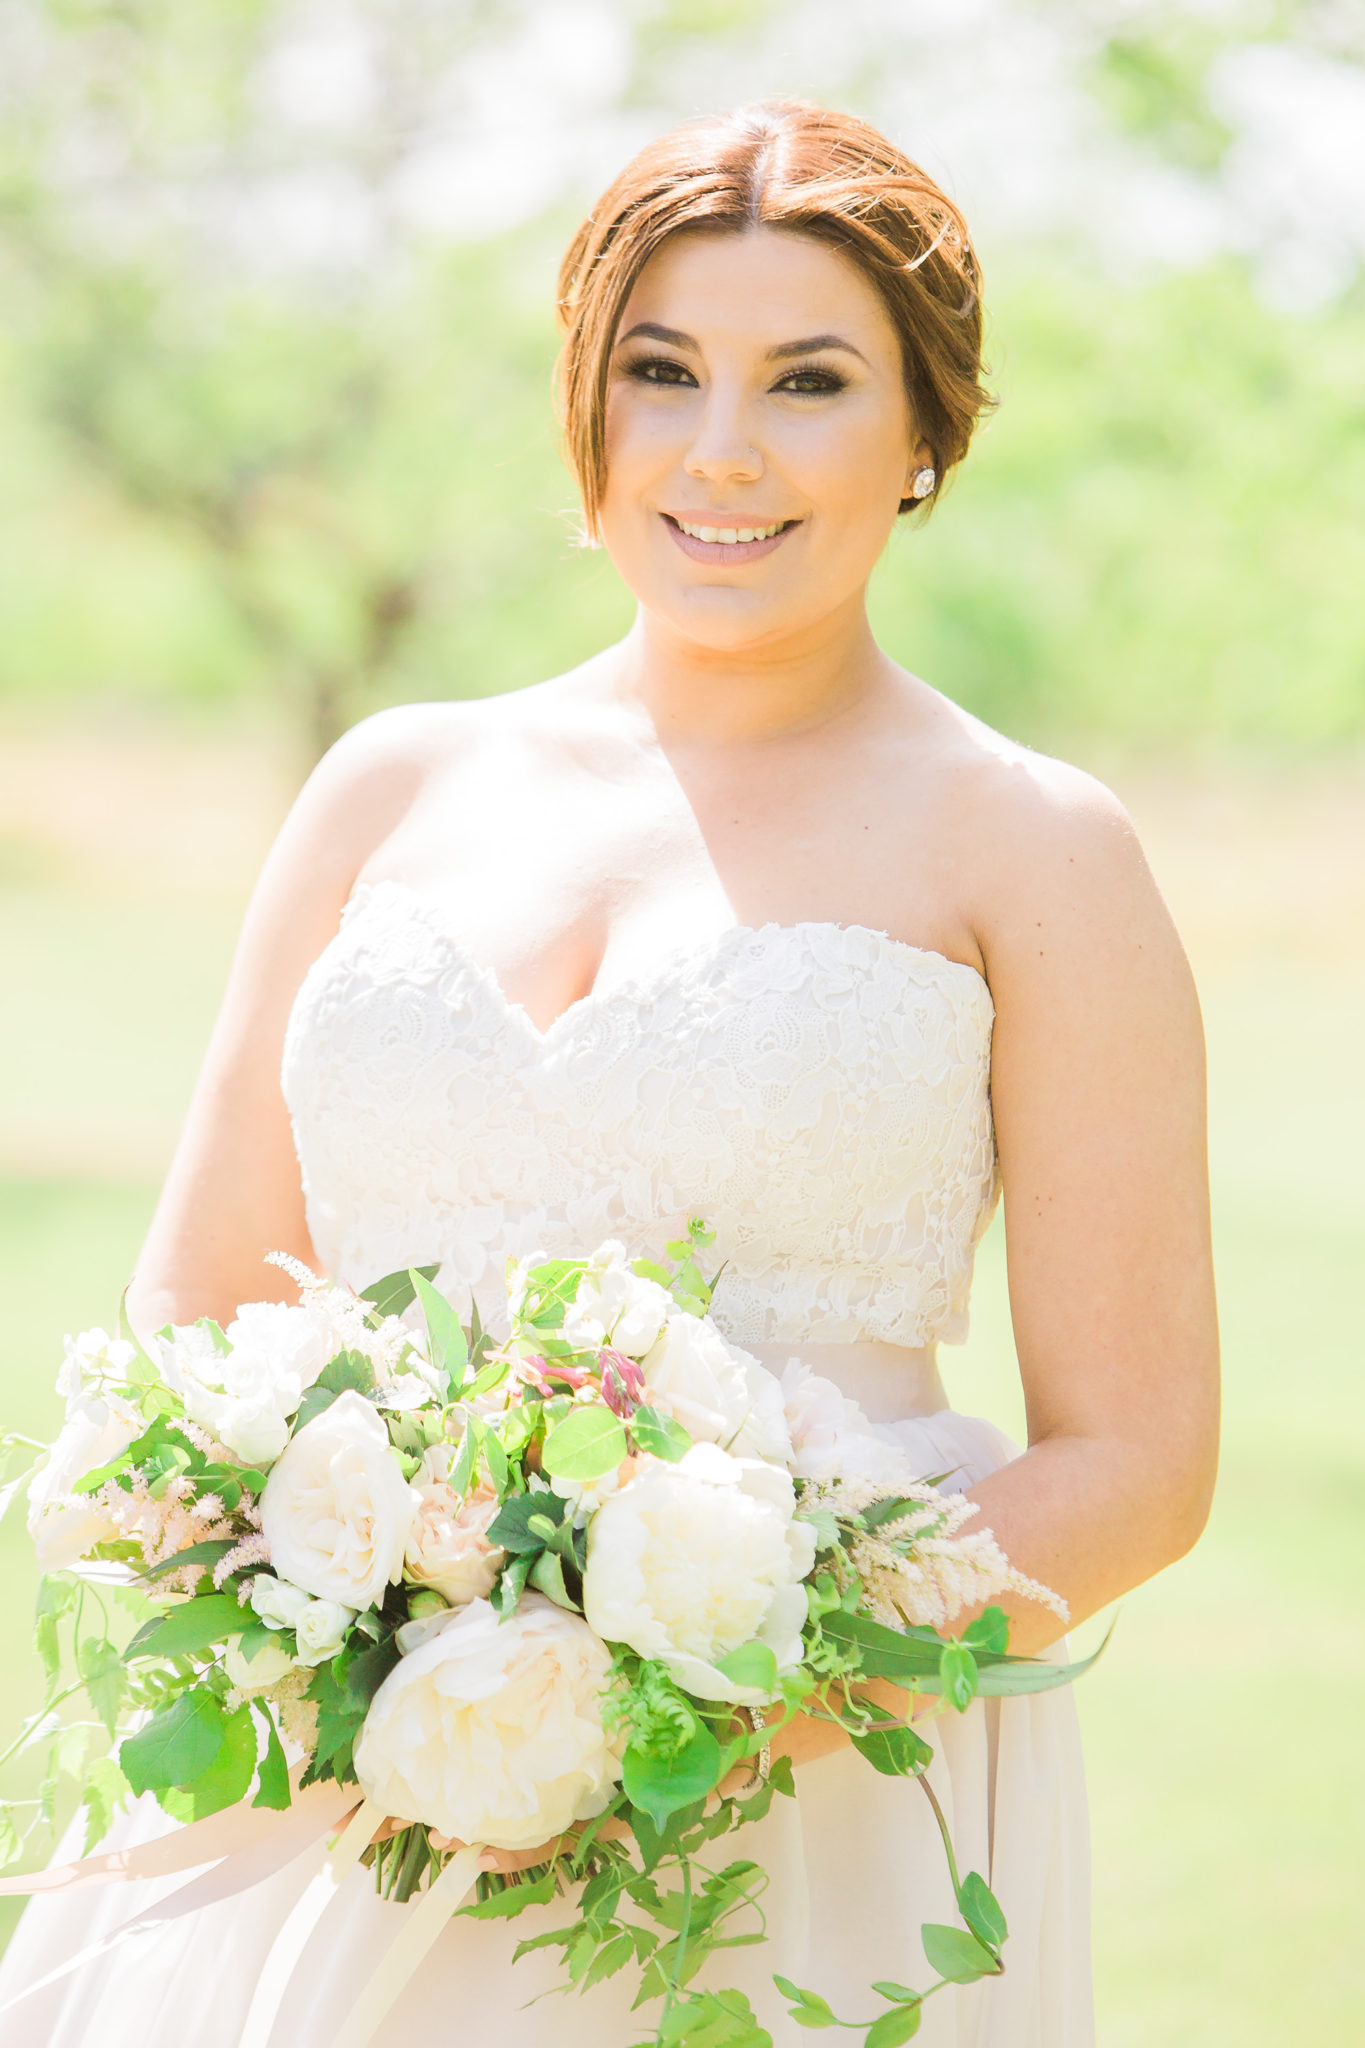 REAL WEDDING | Intimate Rustic Vintage Wedding in Ontario | Samantha Ong Photography | Pretty Pear Bride